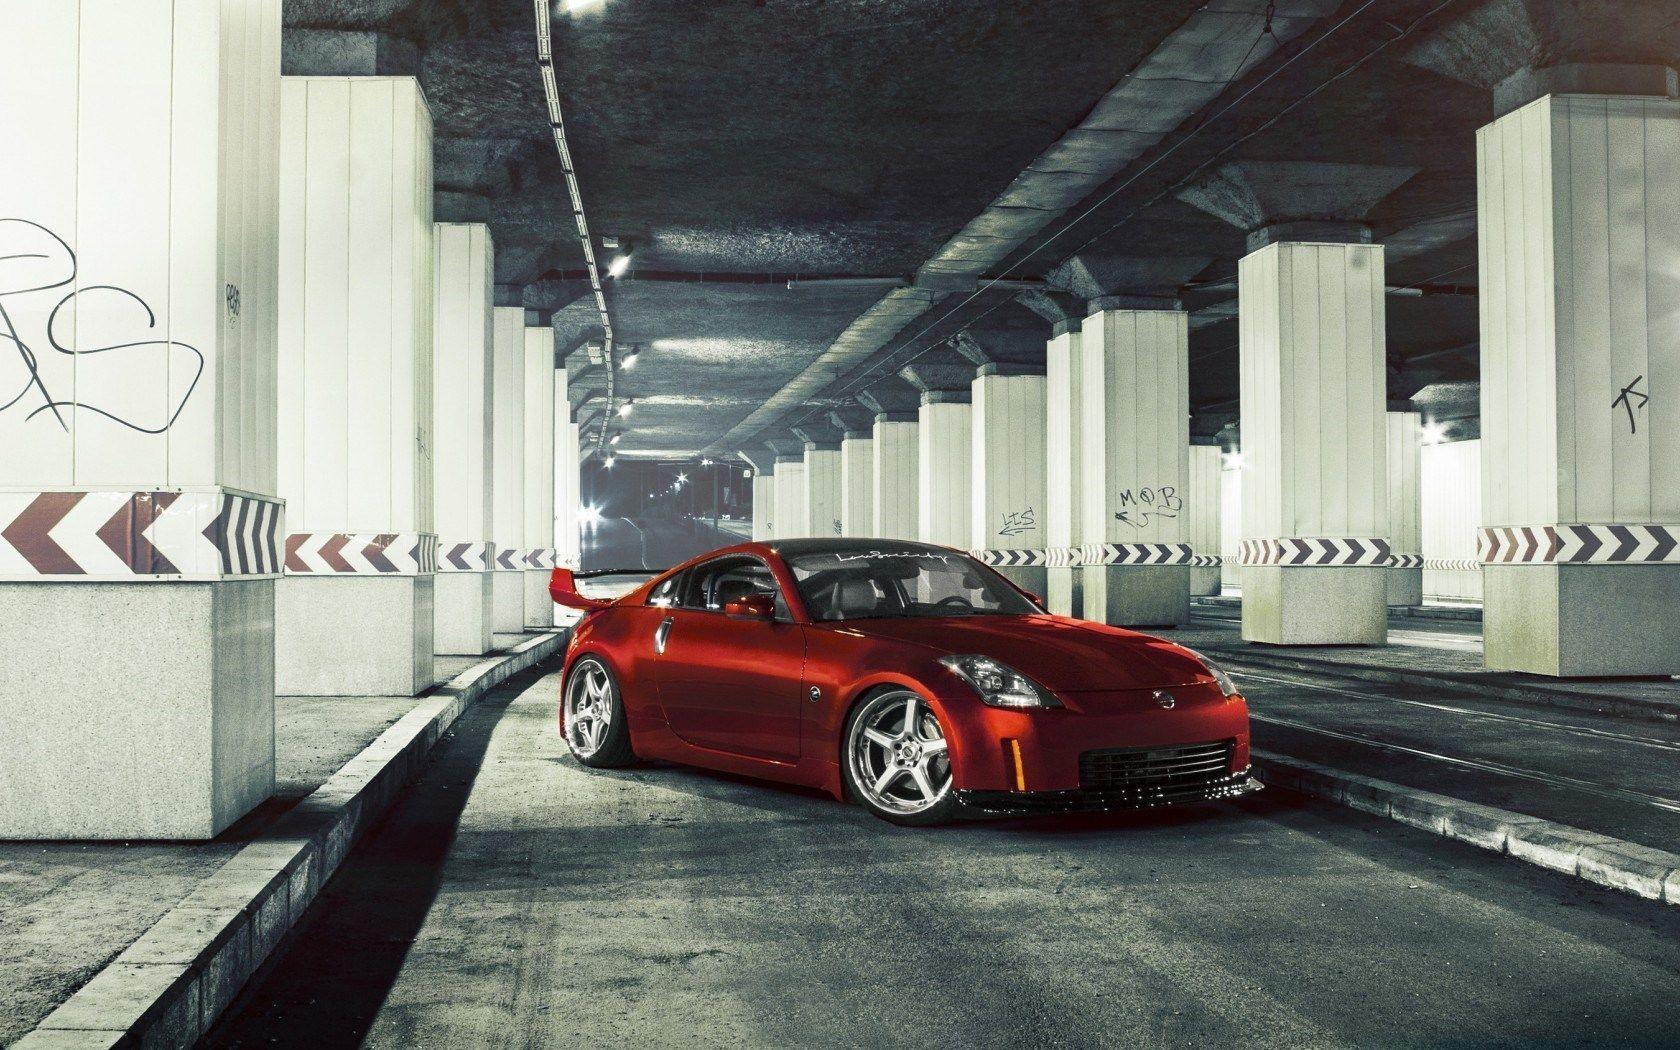 50 Nissan 350z Wallpapers | Nissan 350z Backgrounds Page 2